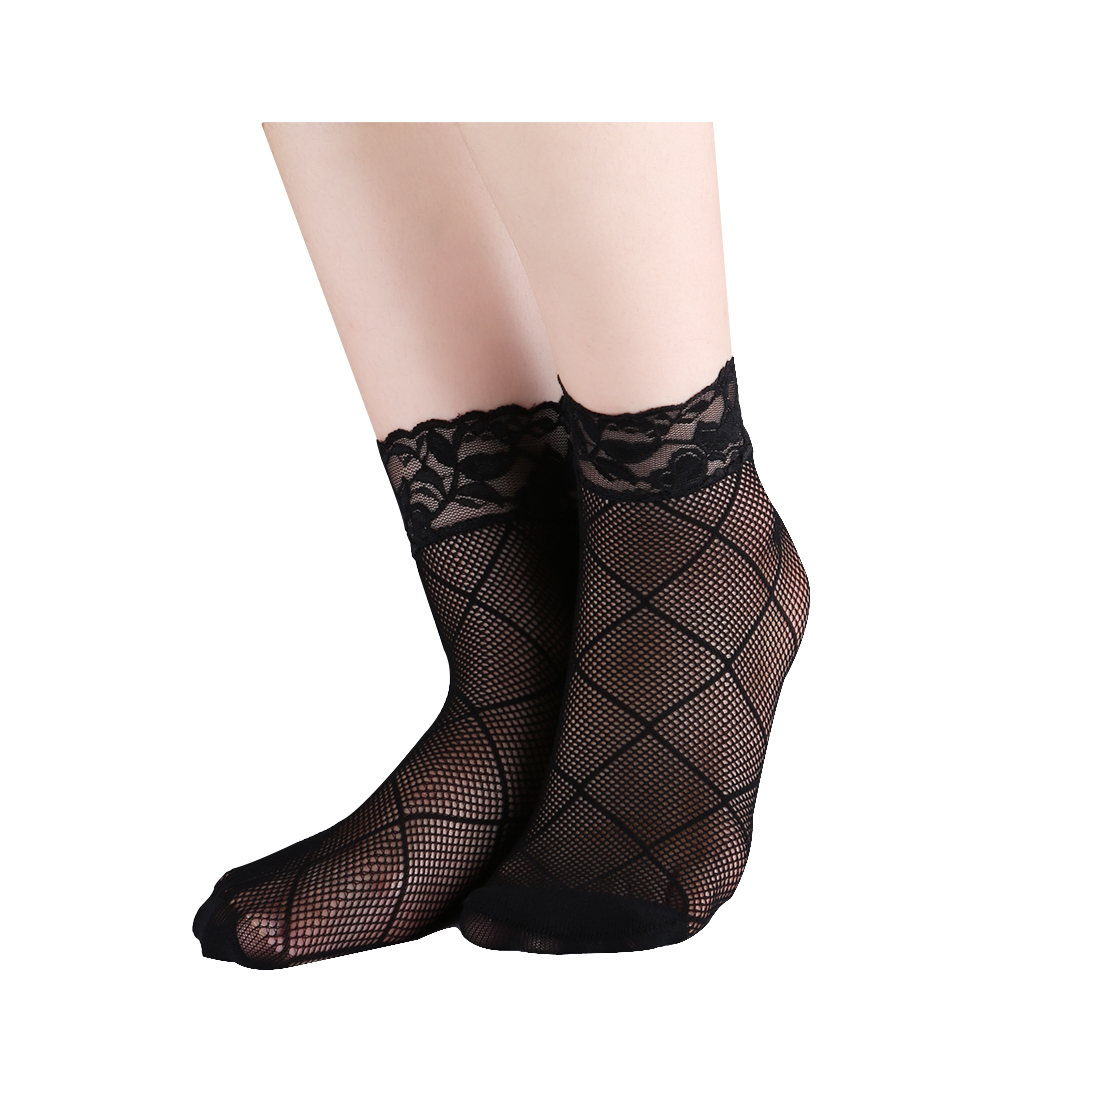 Women 10 Pairs Trendy Fishnet Ankle High Lace Plaids Net Short Socks Black